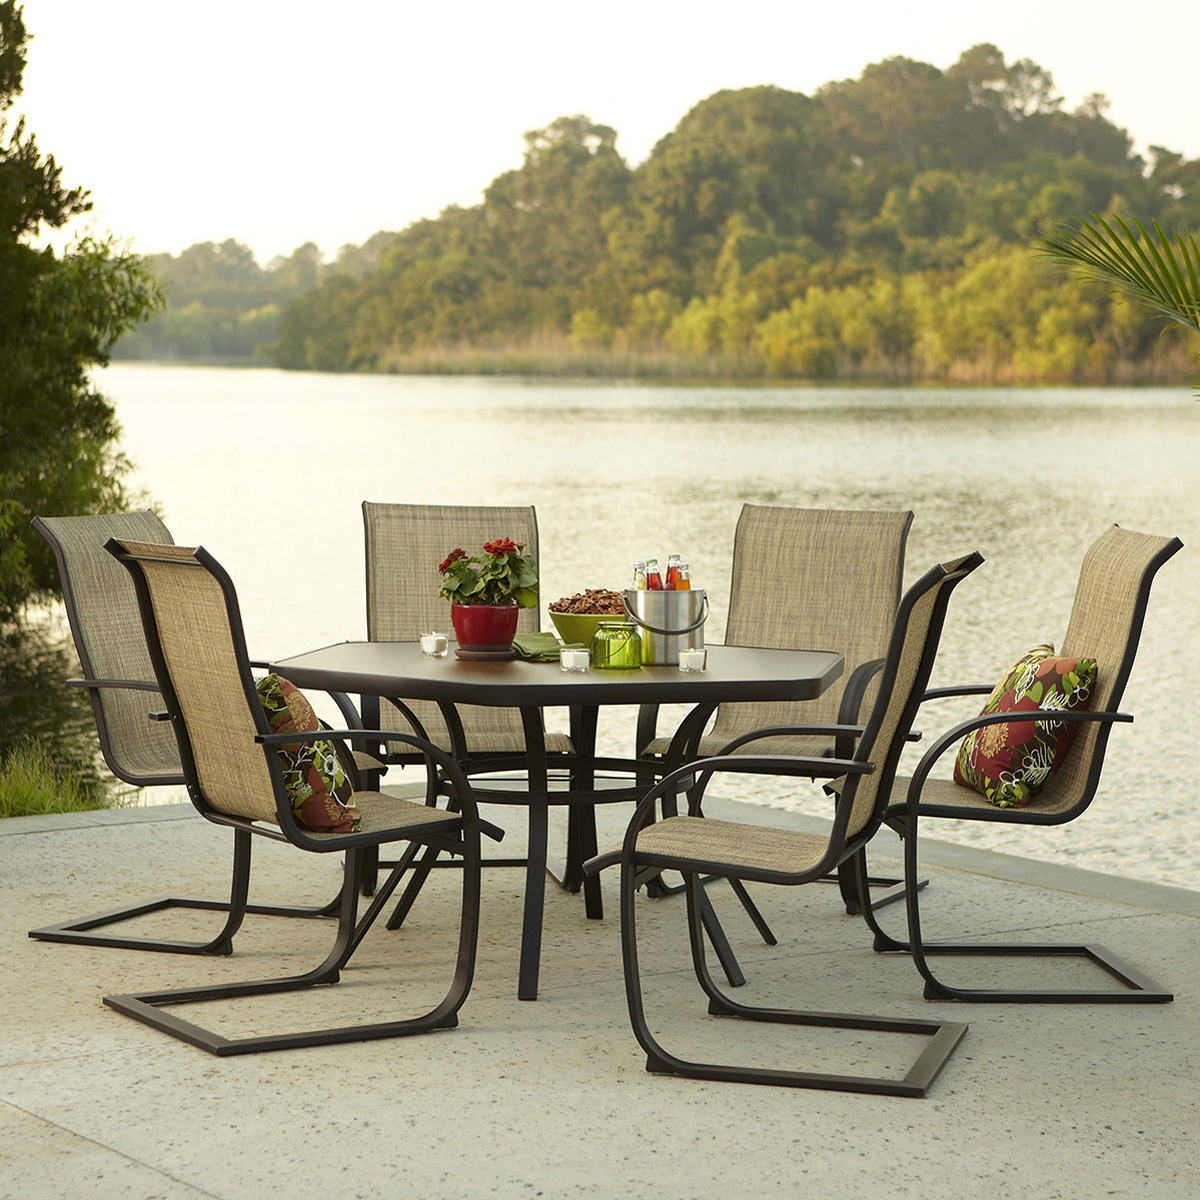 Art Van Outdoor Furniture For Perfect Patio Furnitures Ideas Roy Home Design Baby Shower Ideas